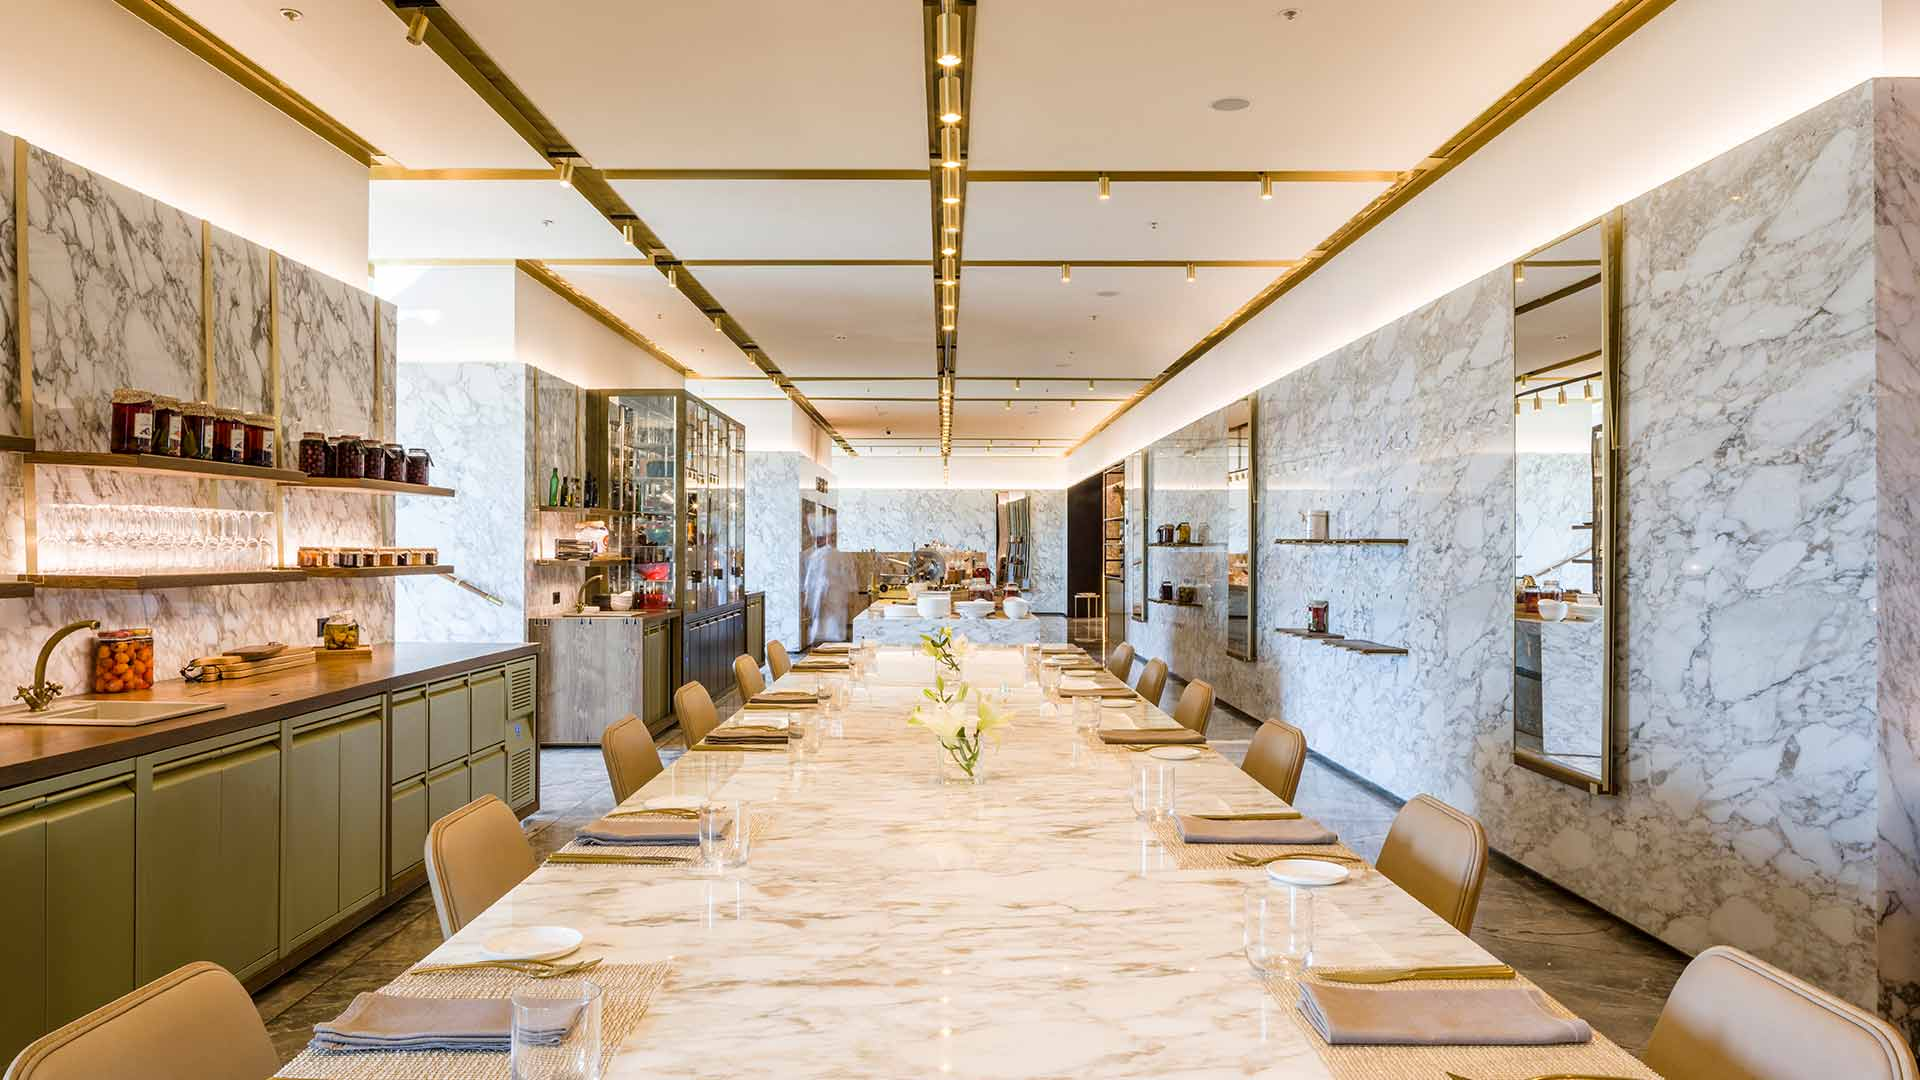 Linear Ceiling Lighting Luxury Hotel All Day Dining Restaurant Consultants Nulty